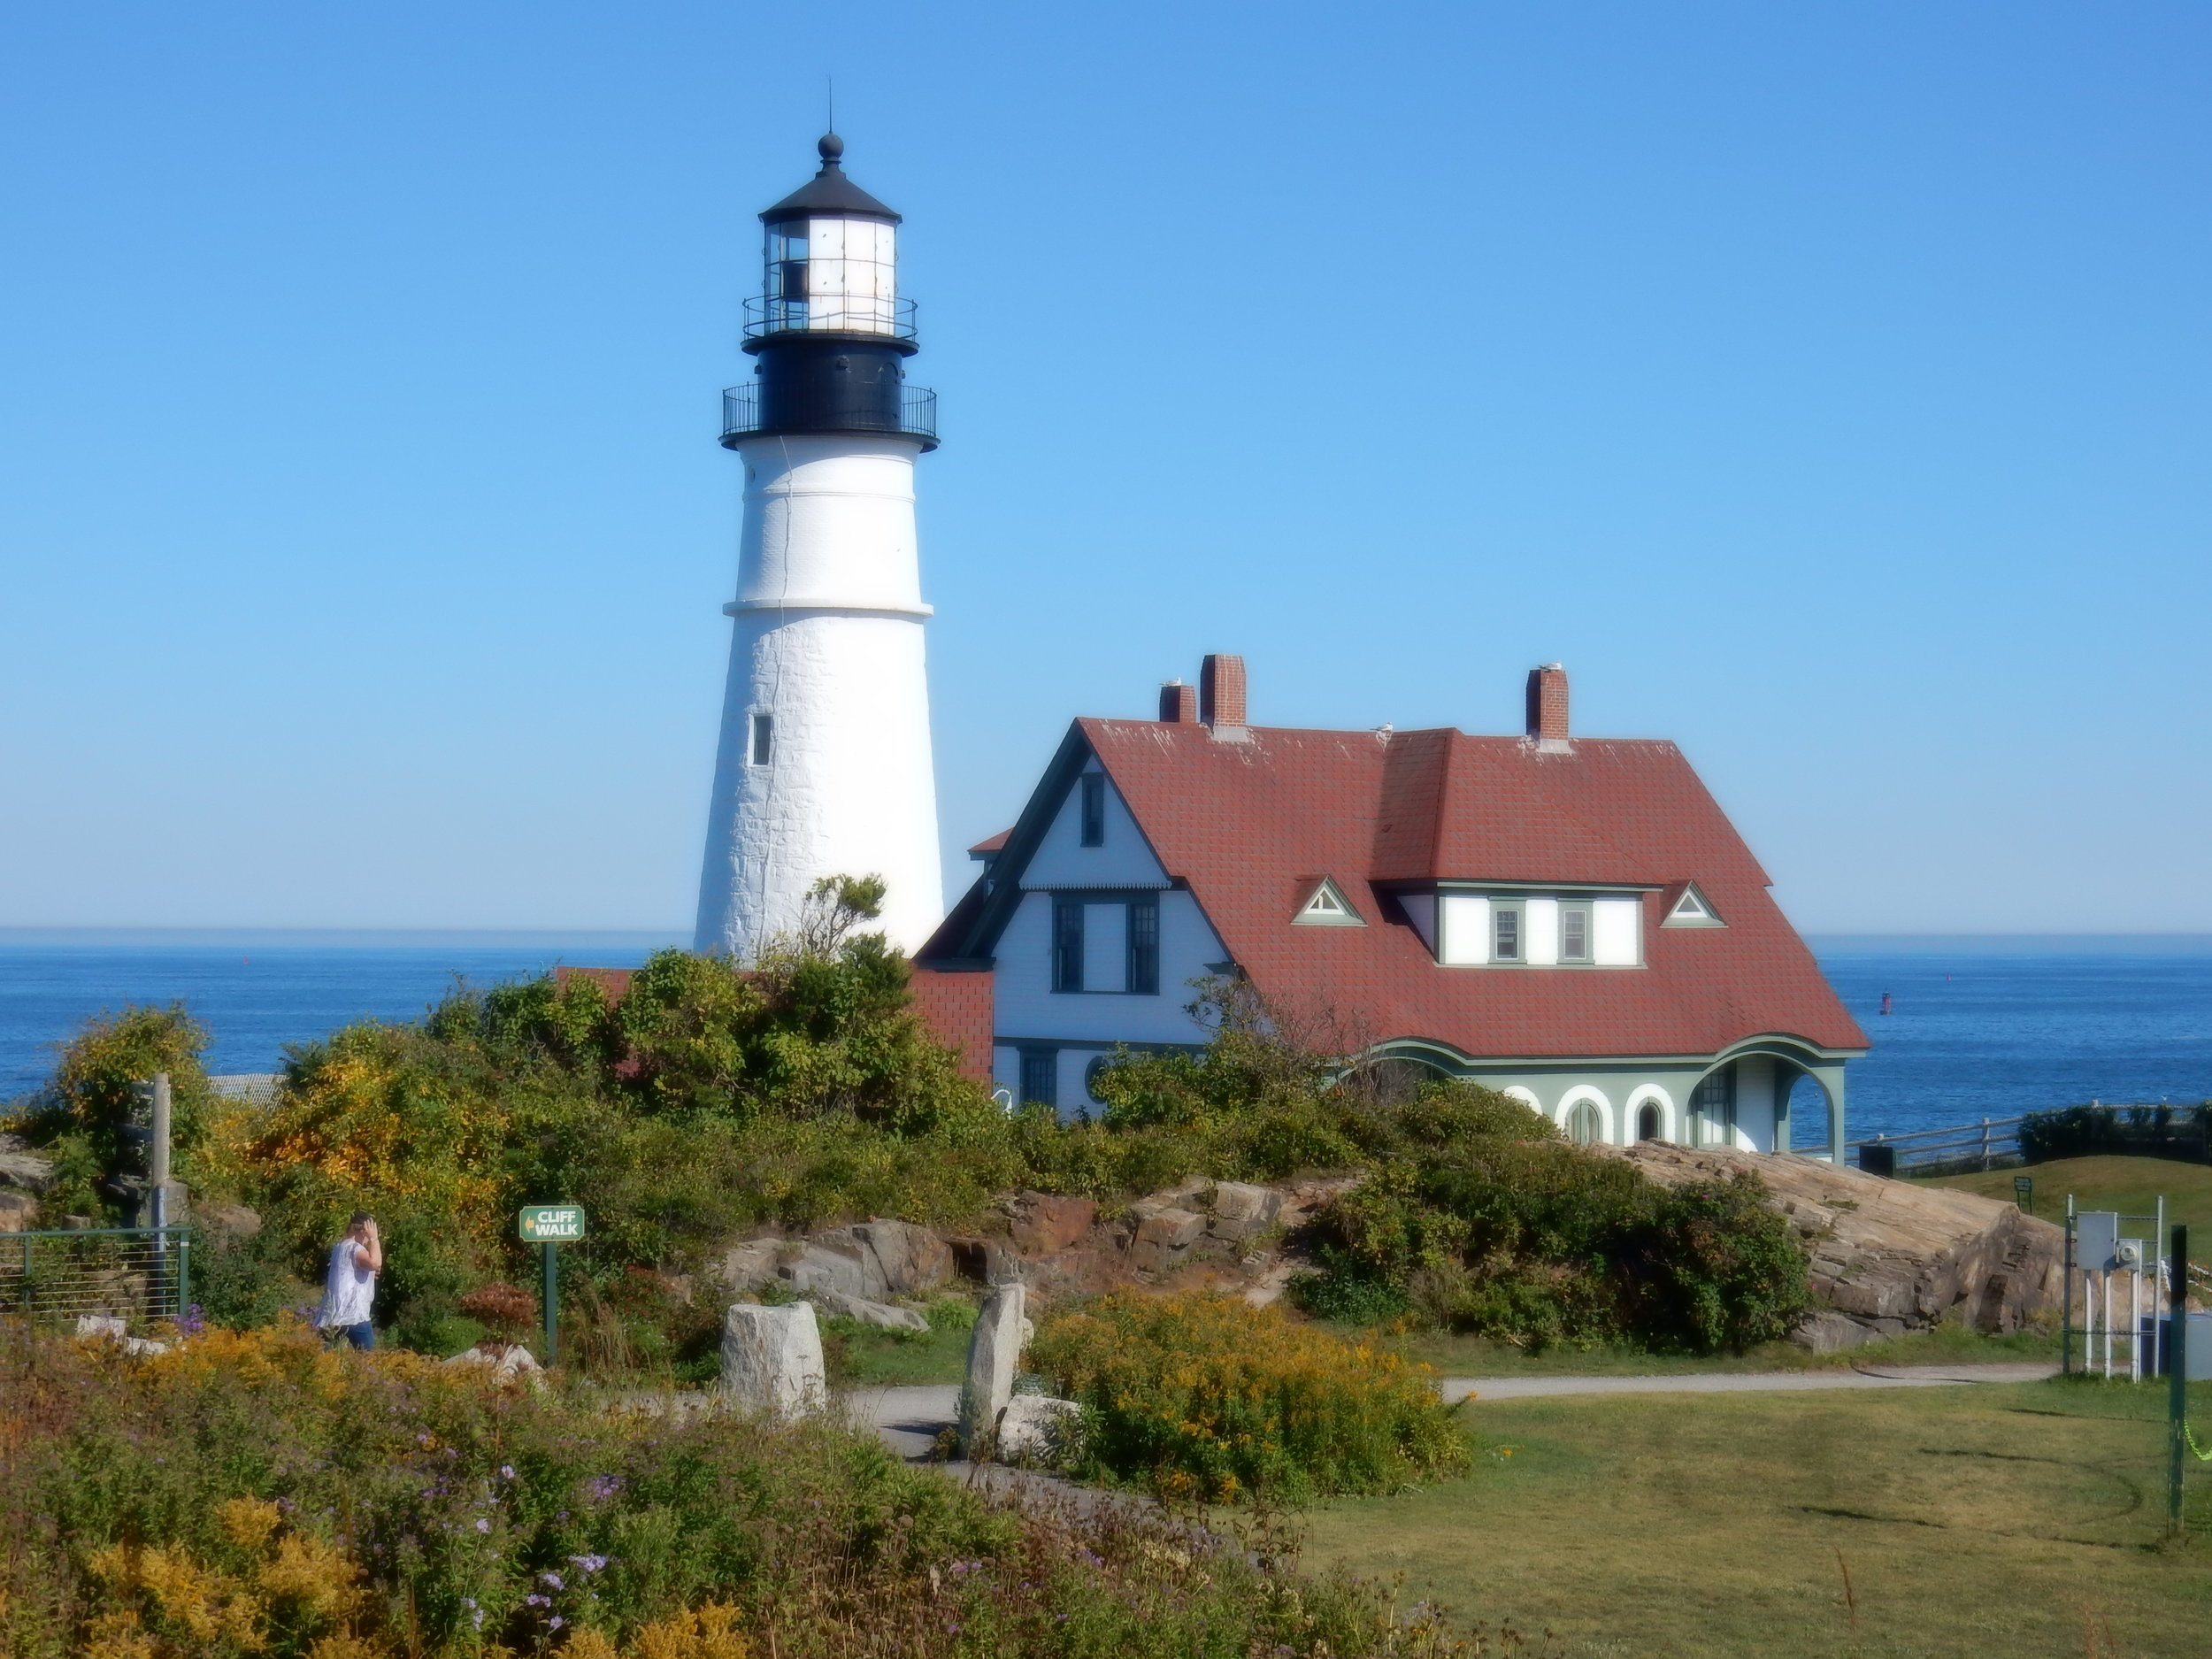 The most photographed lighthouse on the east coast, just outside Portland, Maine.